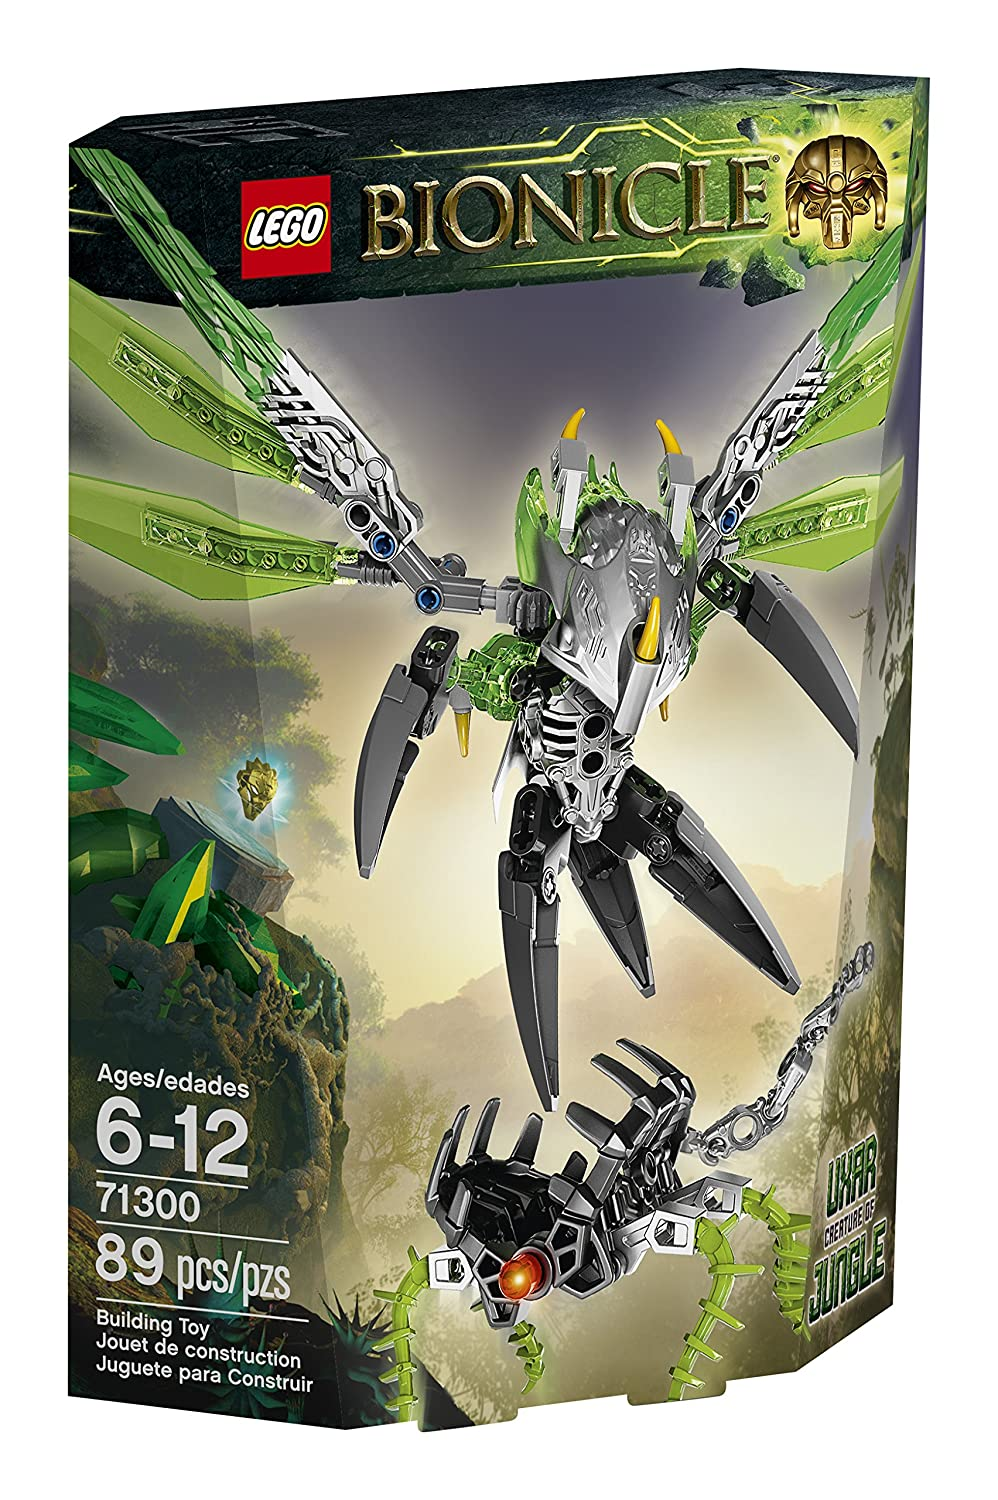 Top 15 Best Lego BIONICLE Sets Reviews in 2019 15